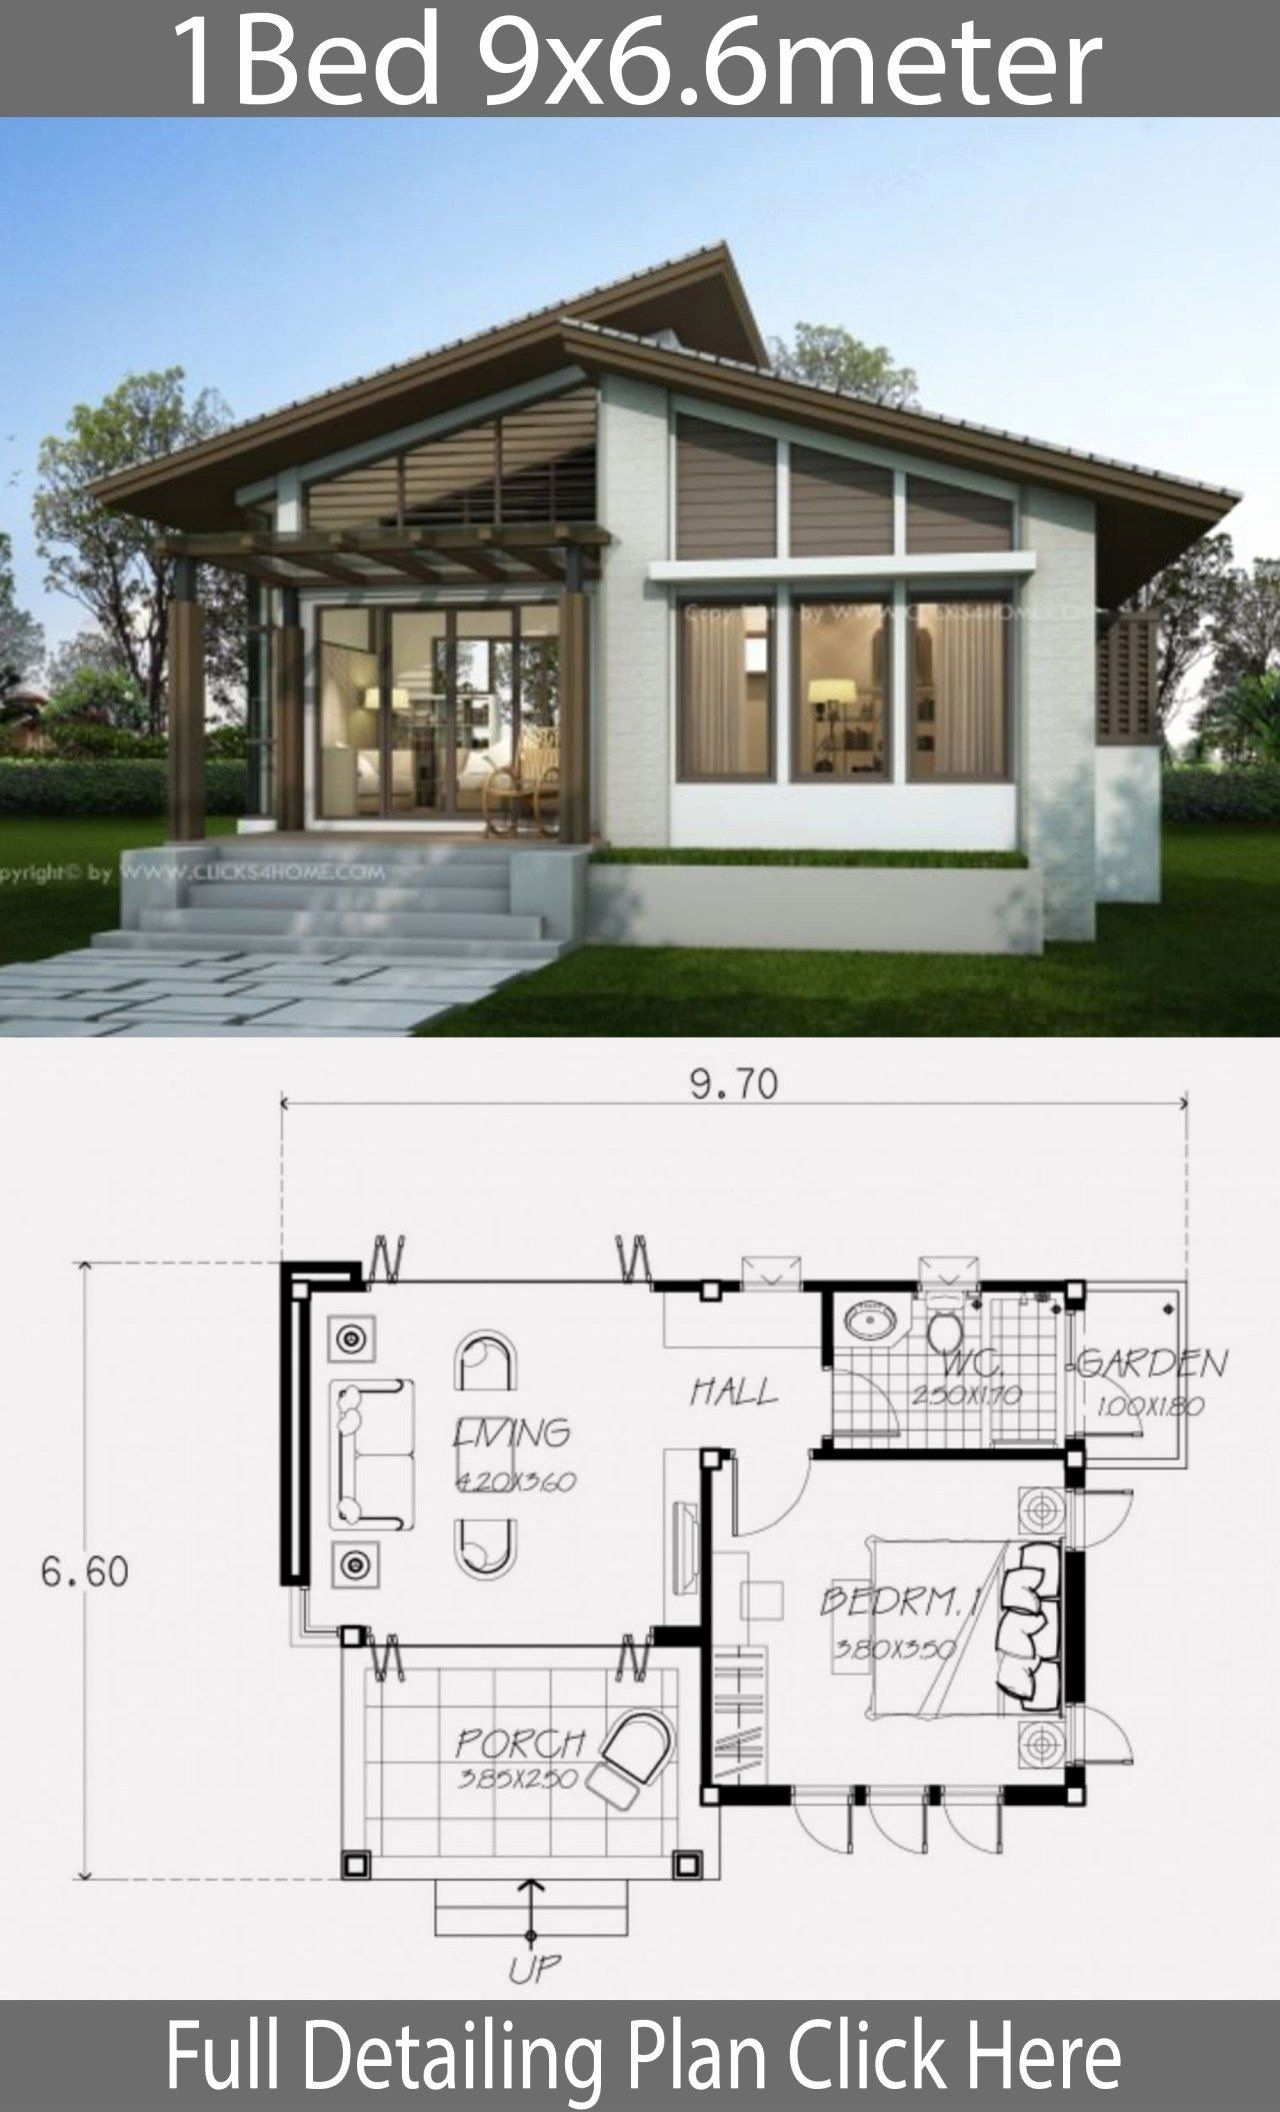 One Home Design Unique Small Home Design Plan 9x6 6m With One Bedroom Home Ideas Small House Design Plans Small House Style Modern House Plans